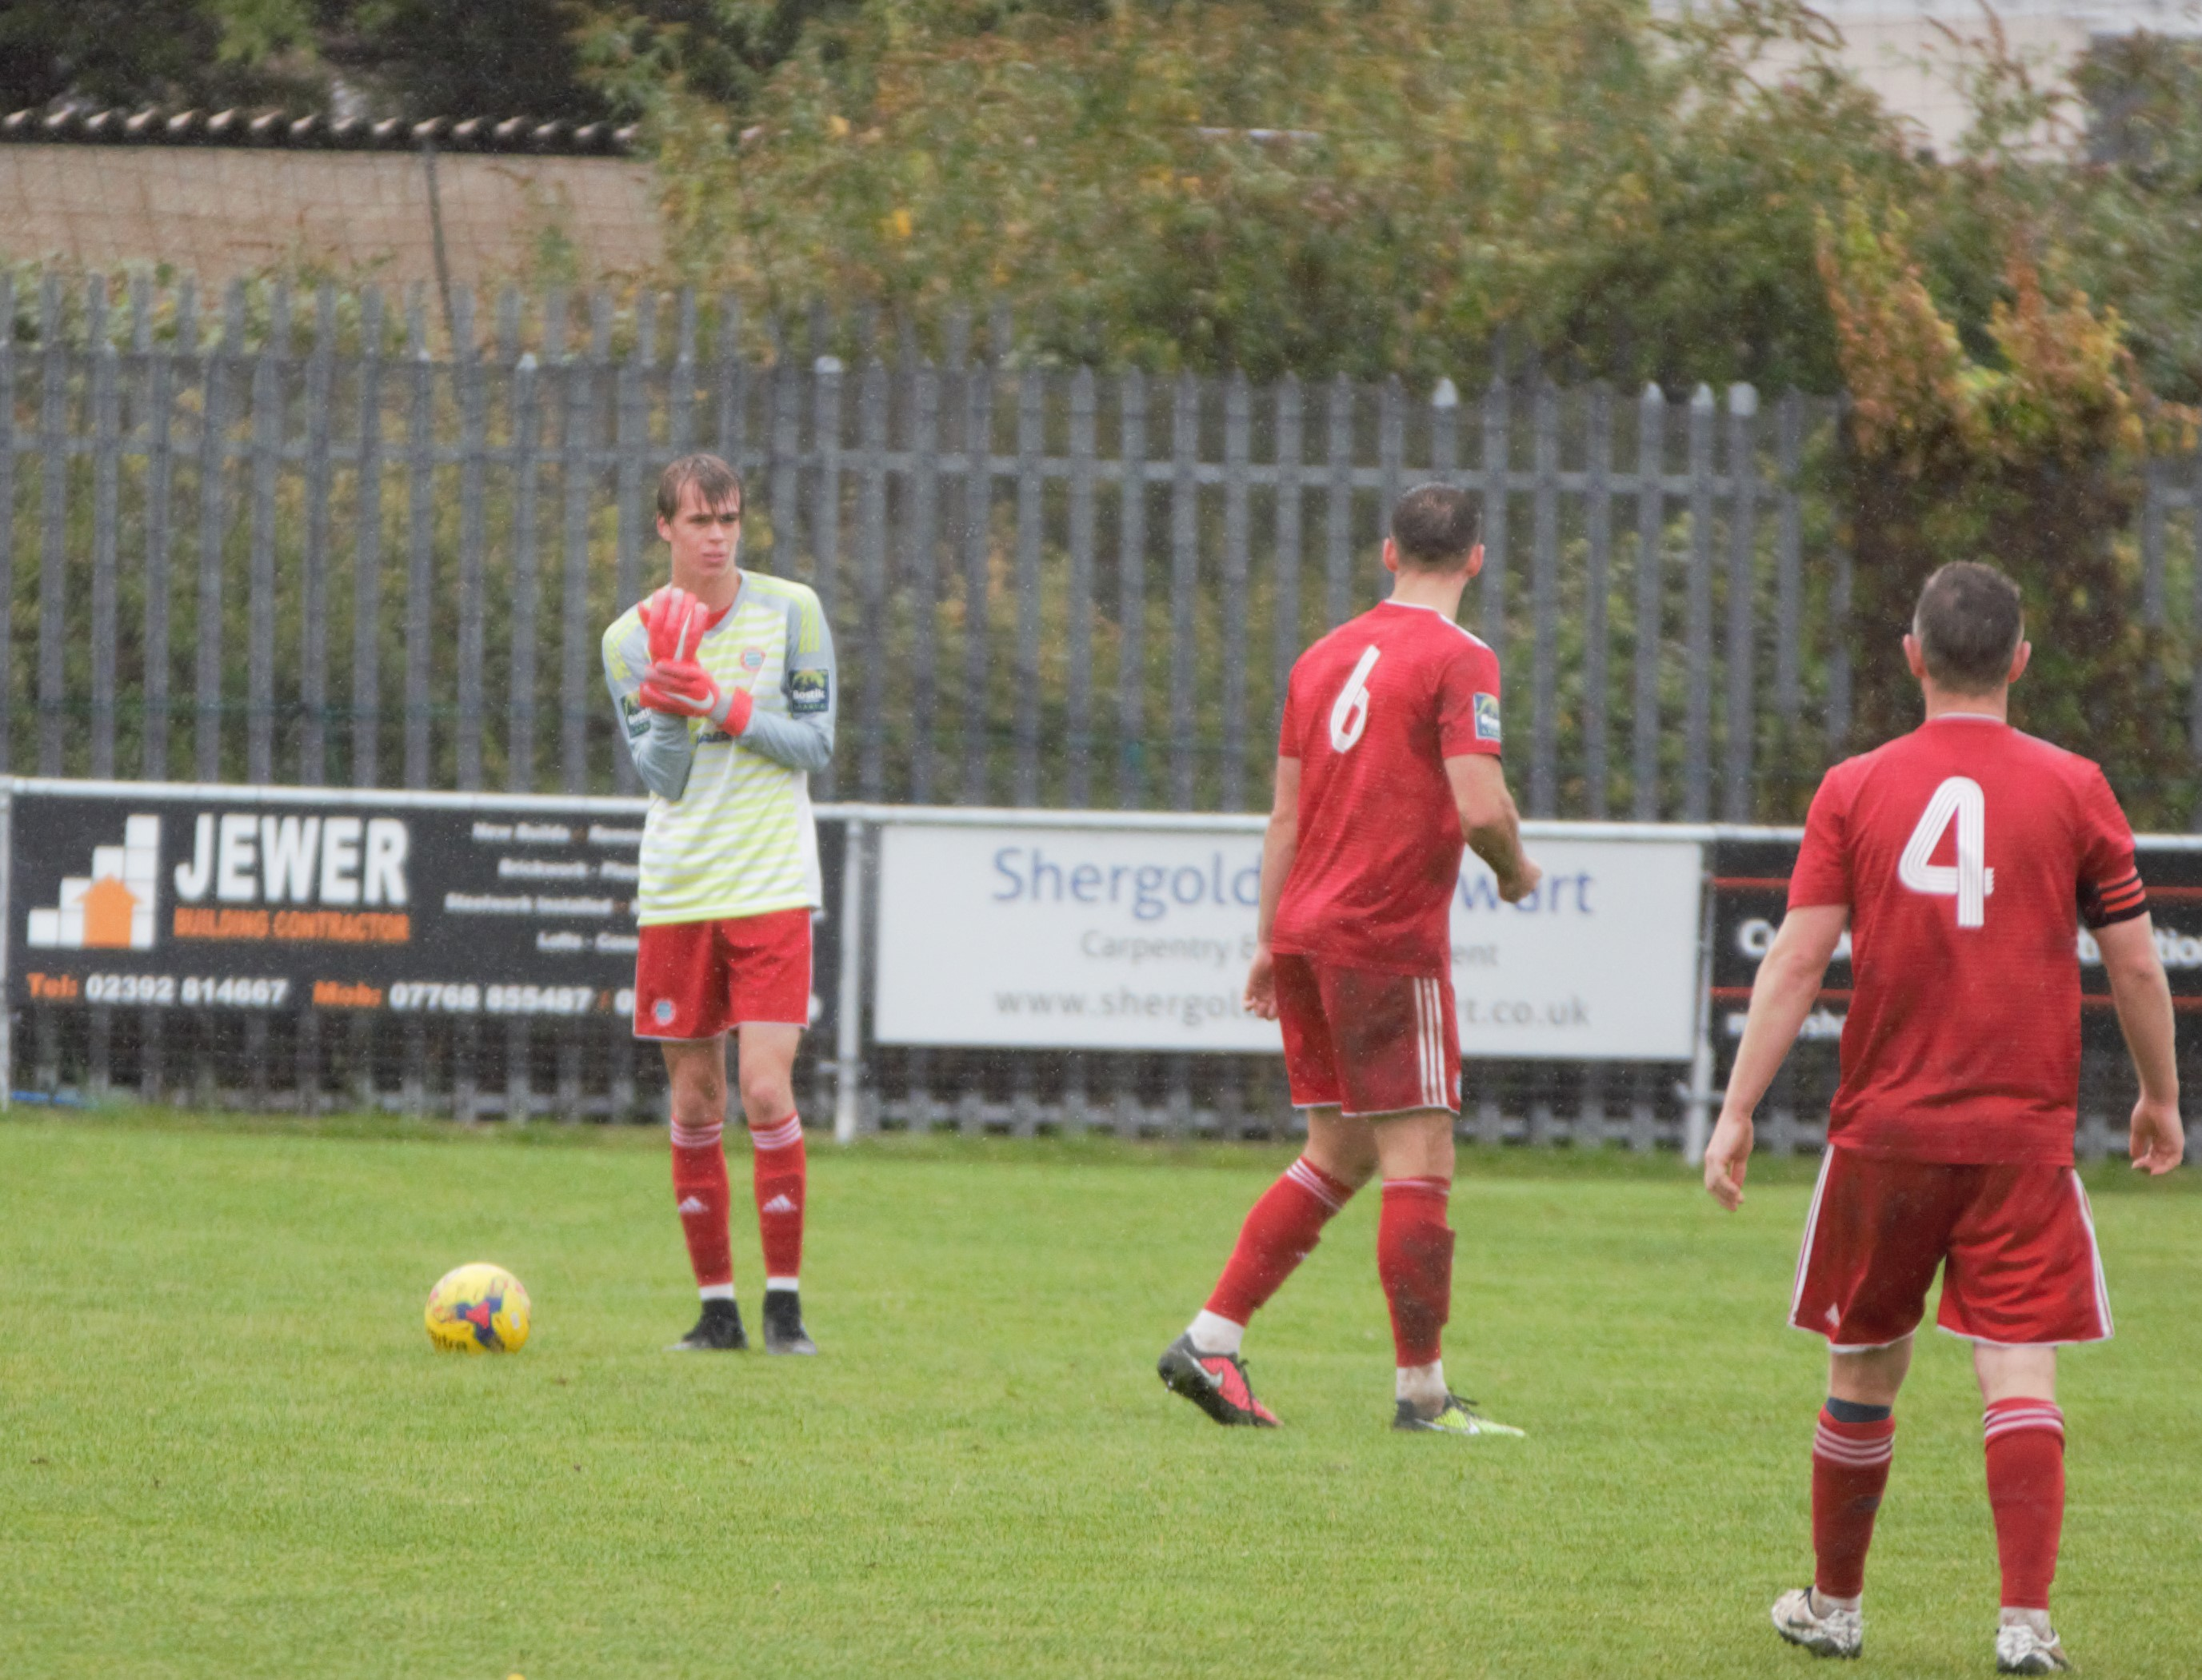 Read the full article - Gallery: Moneyfields [A] – FA Cup